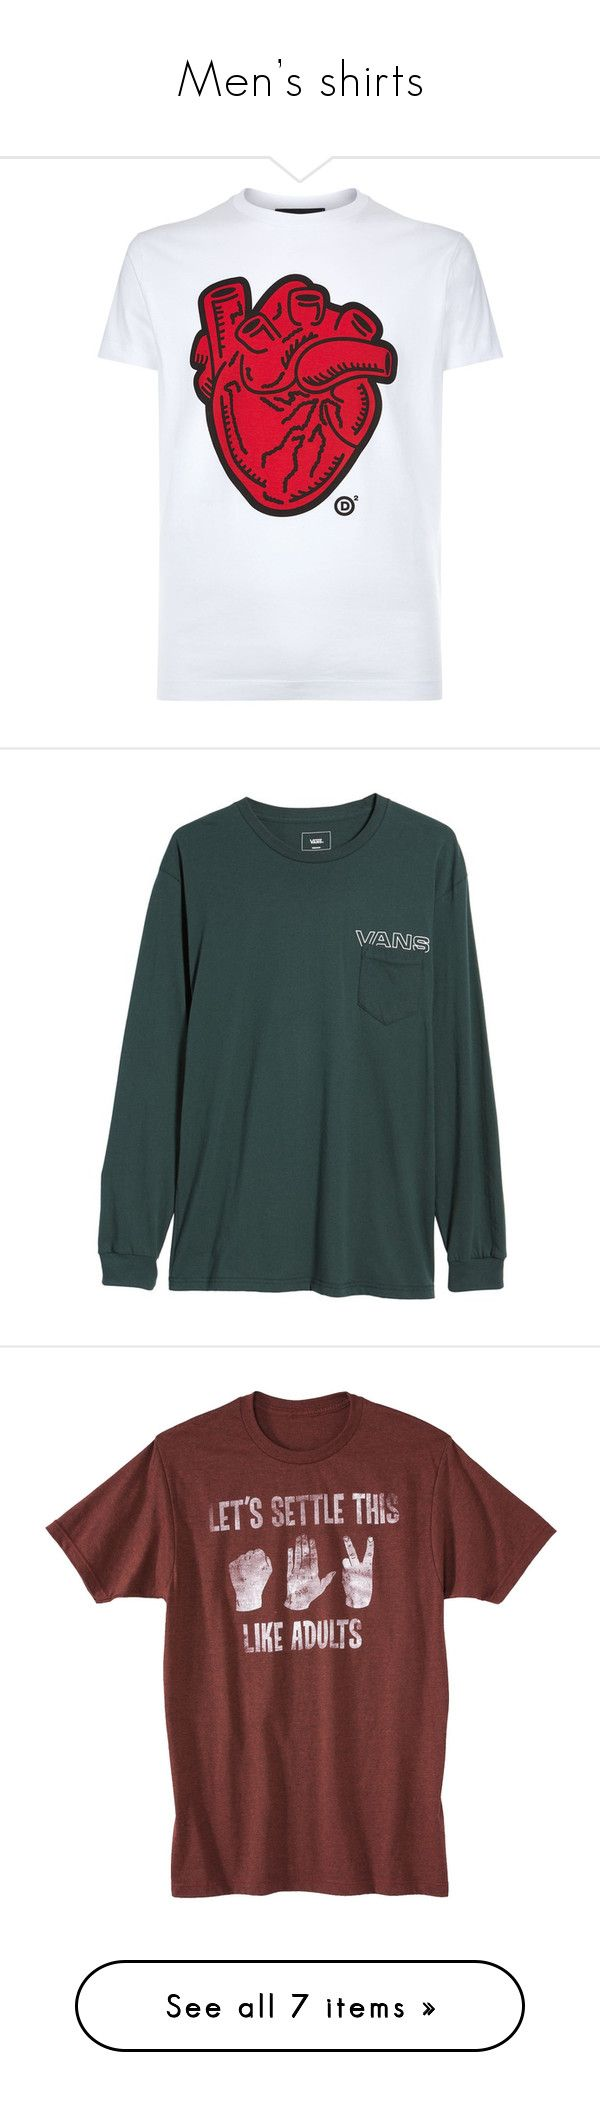 """""""Men's shirts"""" by just-the-shelleys ❤ liked on Polyvore featuring men's fashion, men's clothing, men's shirts, men's t-shirts, mens slim fit shirts, mens slim shirts, mens graphic t shirts, mens crew neck t shirts, mens cotton shirts and tops"""